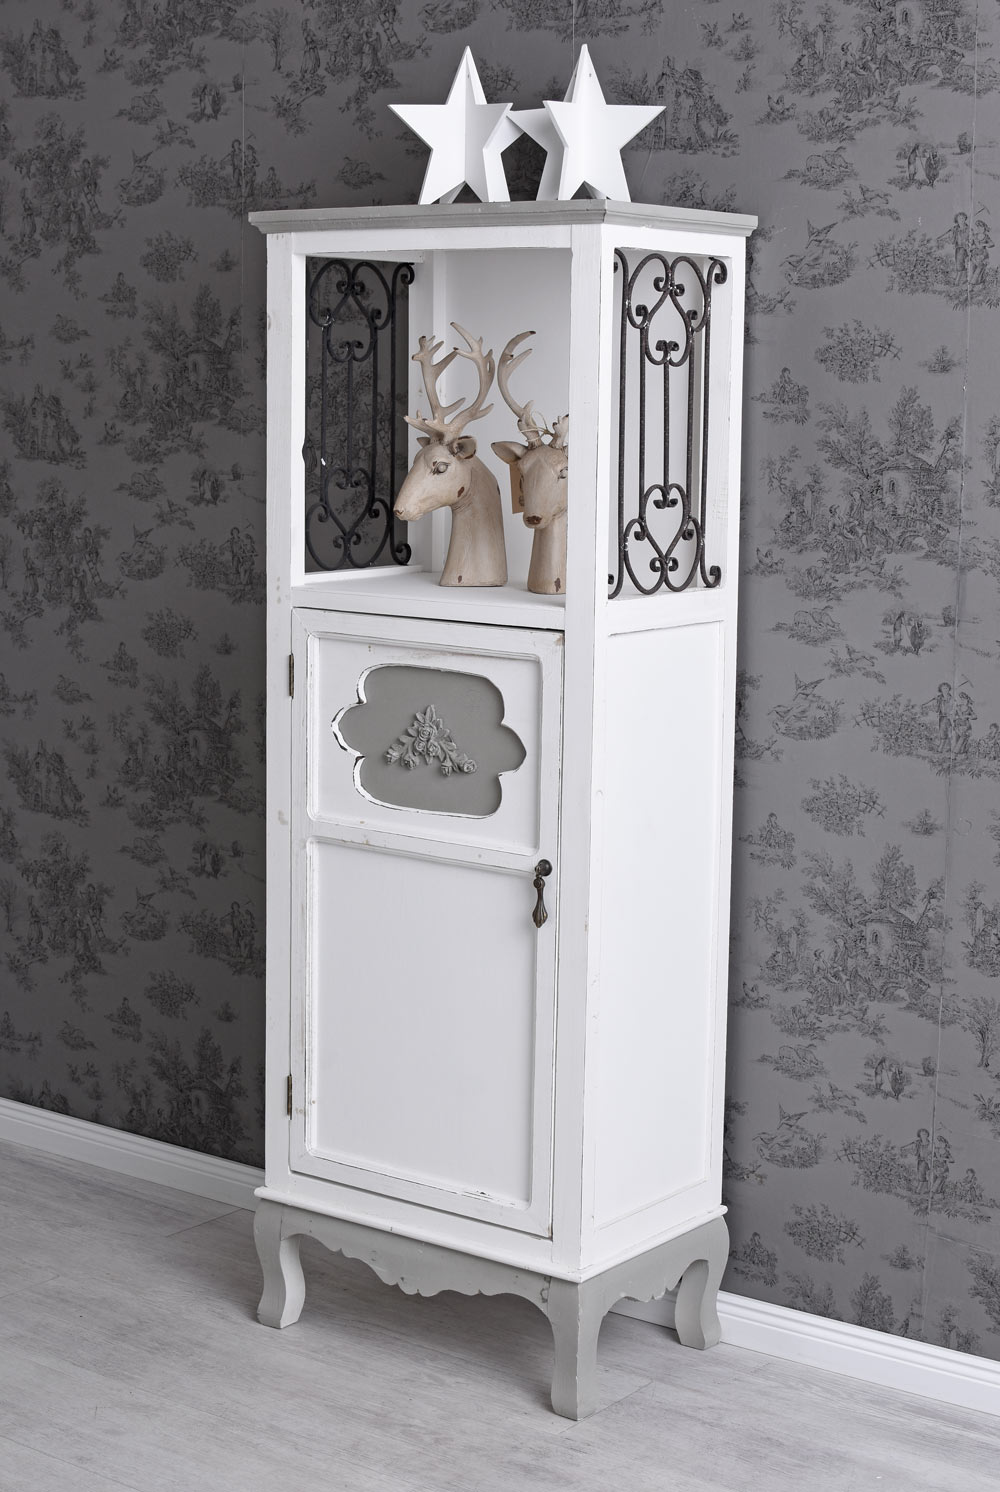 garderobenschrank holzschrank holzregal shabby chic badregal badezimmerschrank ebay. Black Bedroom Furniture Sets. Home Design Ideas